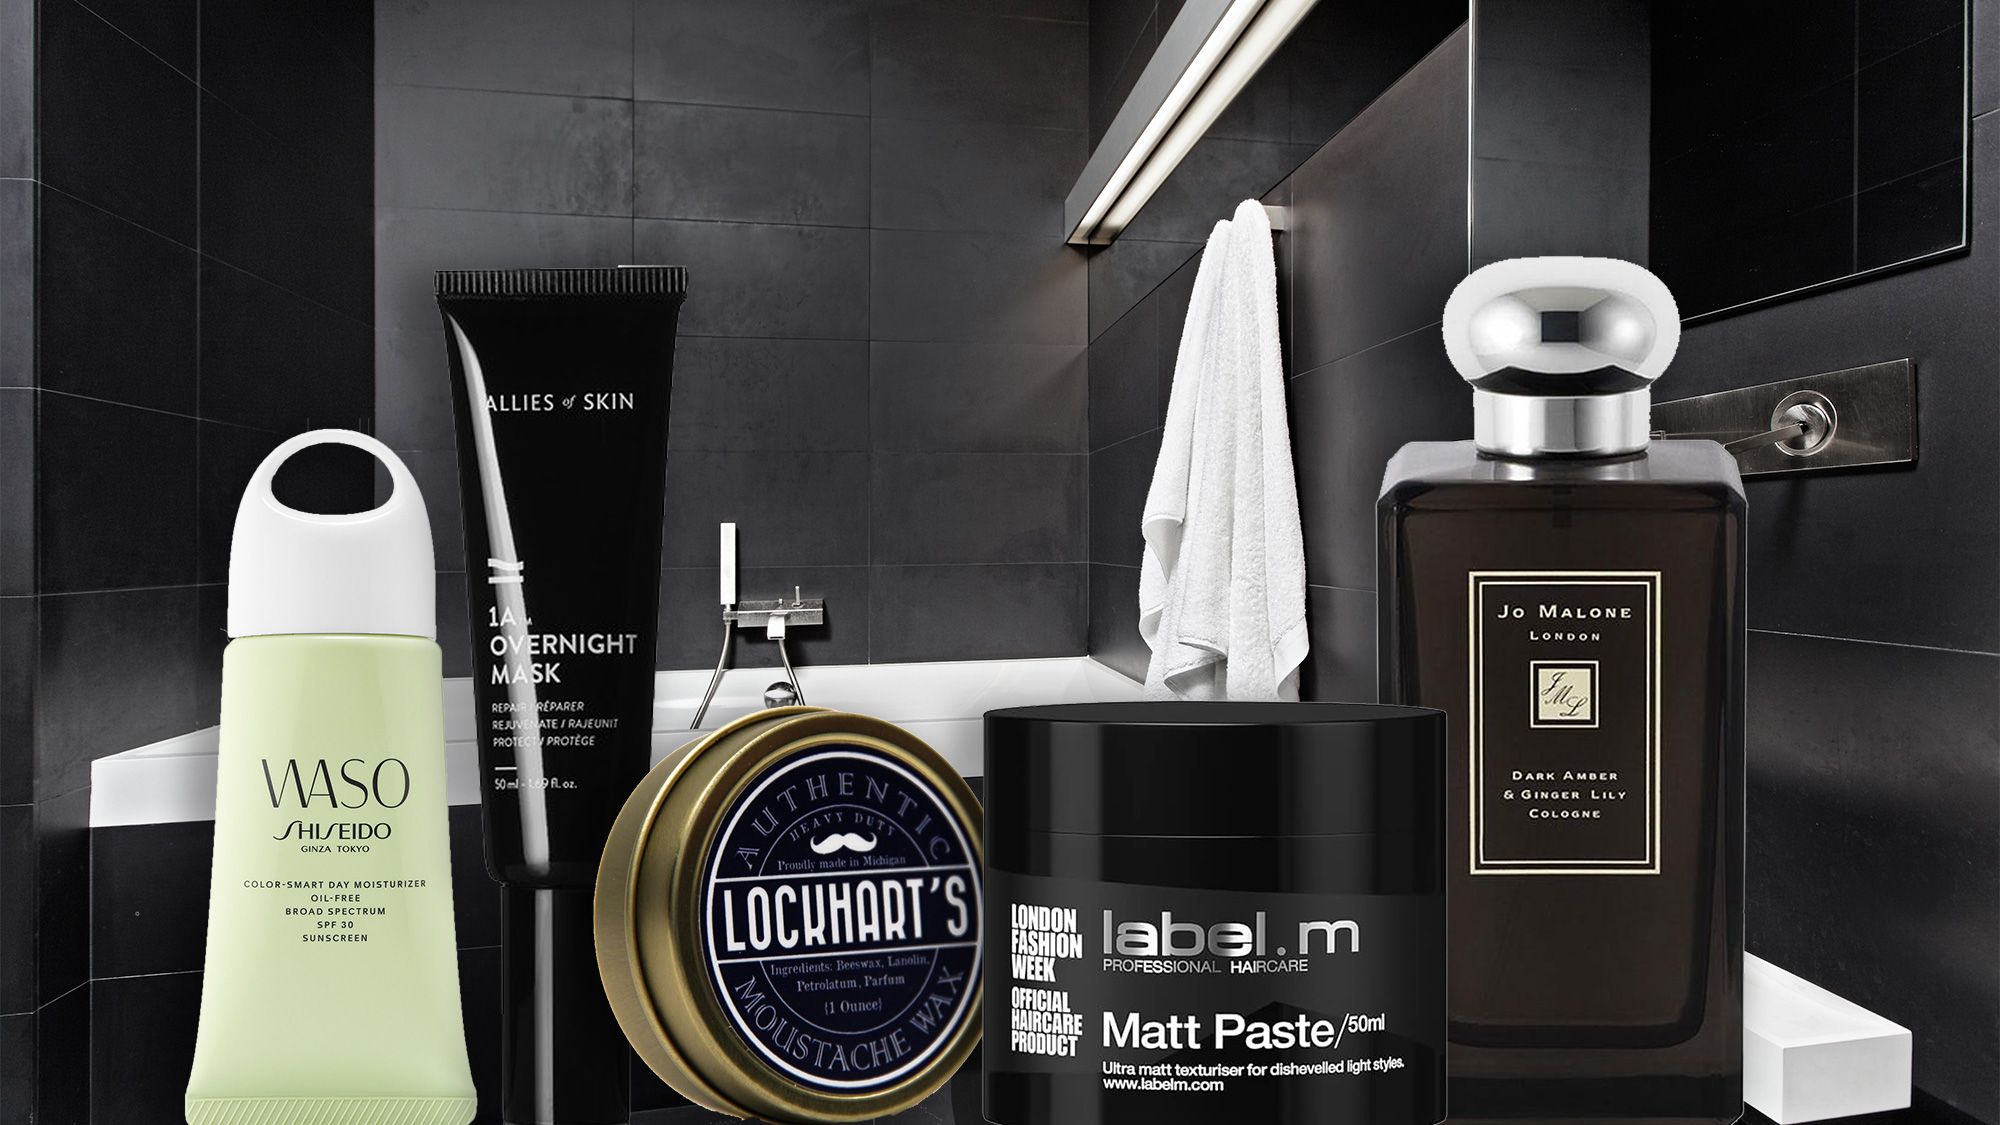 best-hair-grooming-products-2018-february-robin-james-man-for-himself-mfh